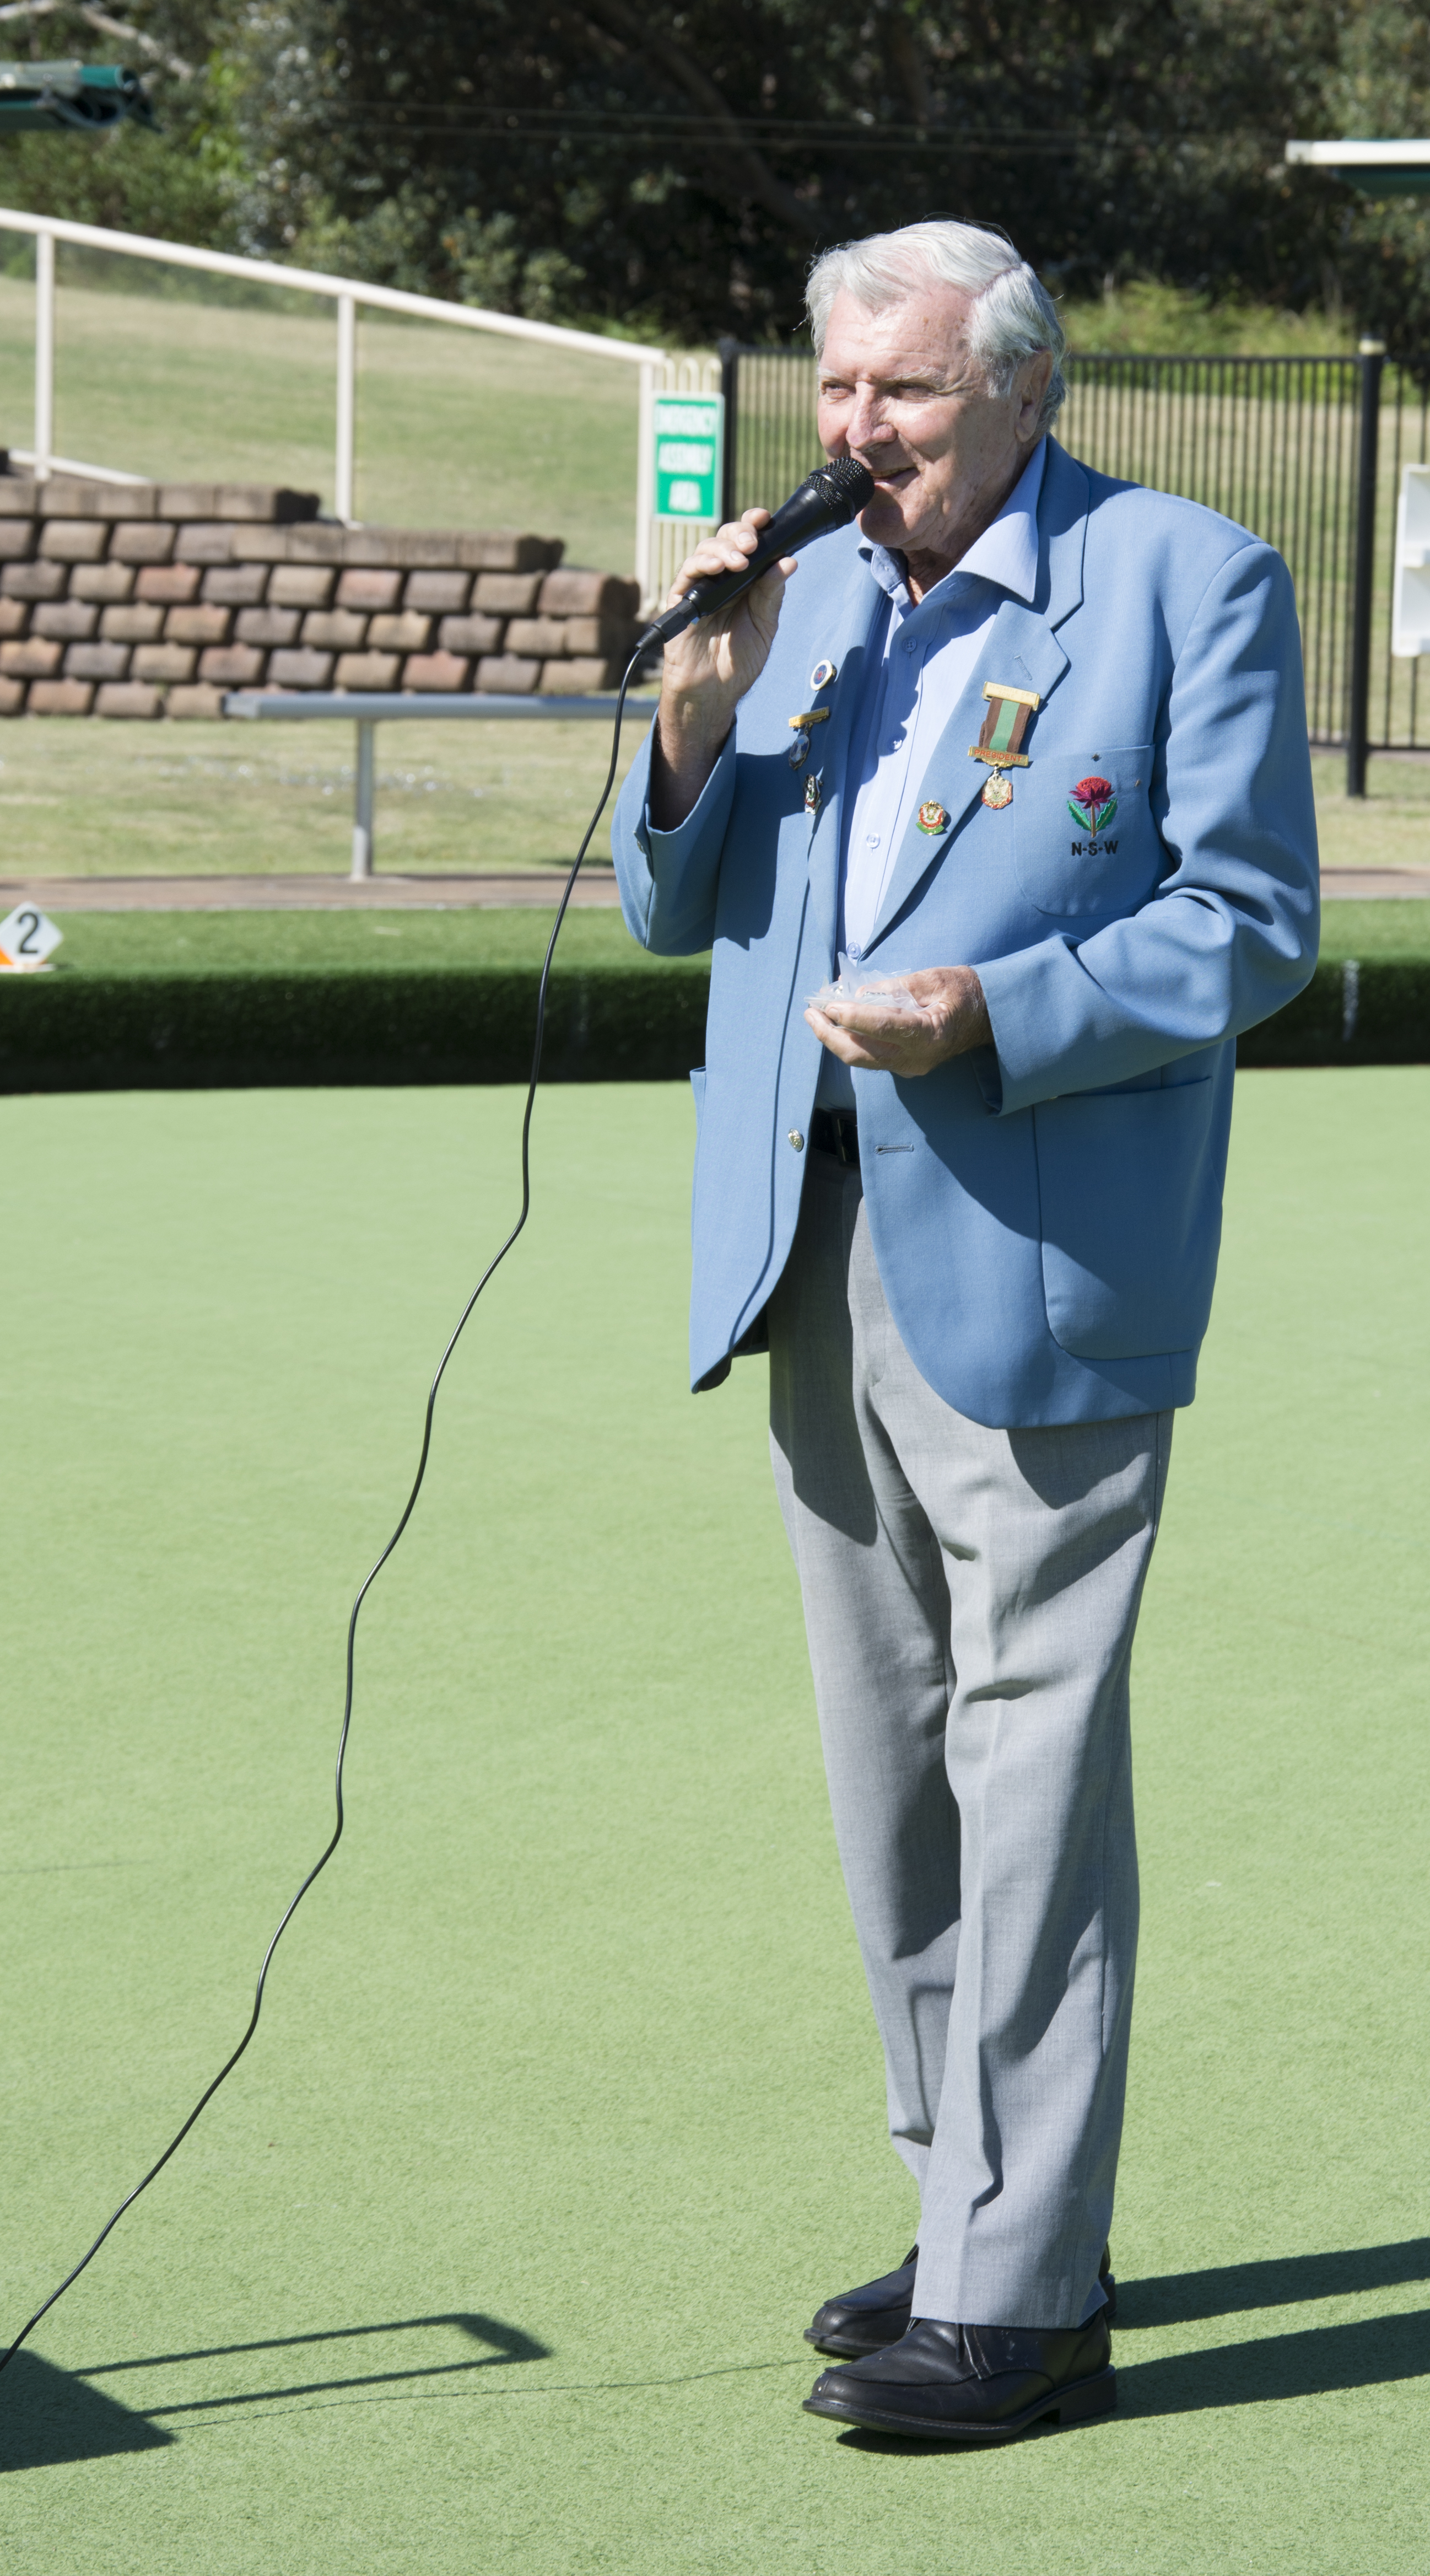 John Smith, President, Newcastle District Bowls Association. Photo by: Square Shoe Photography